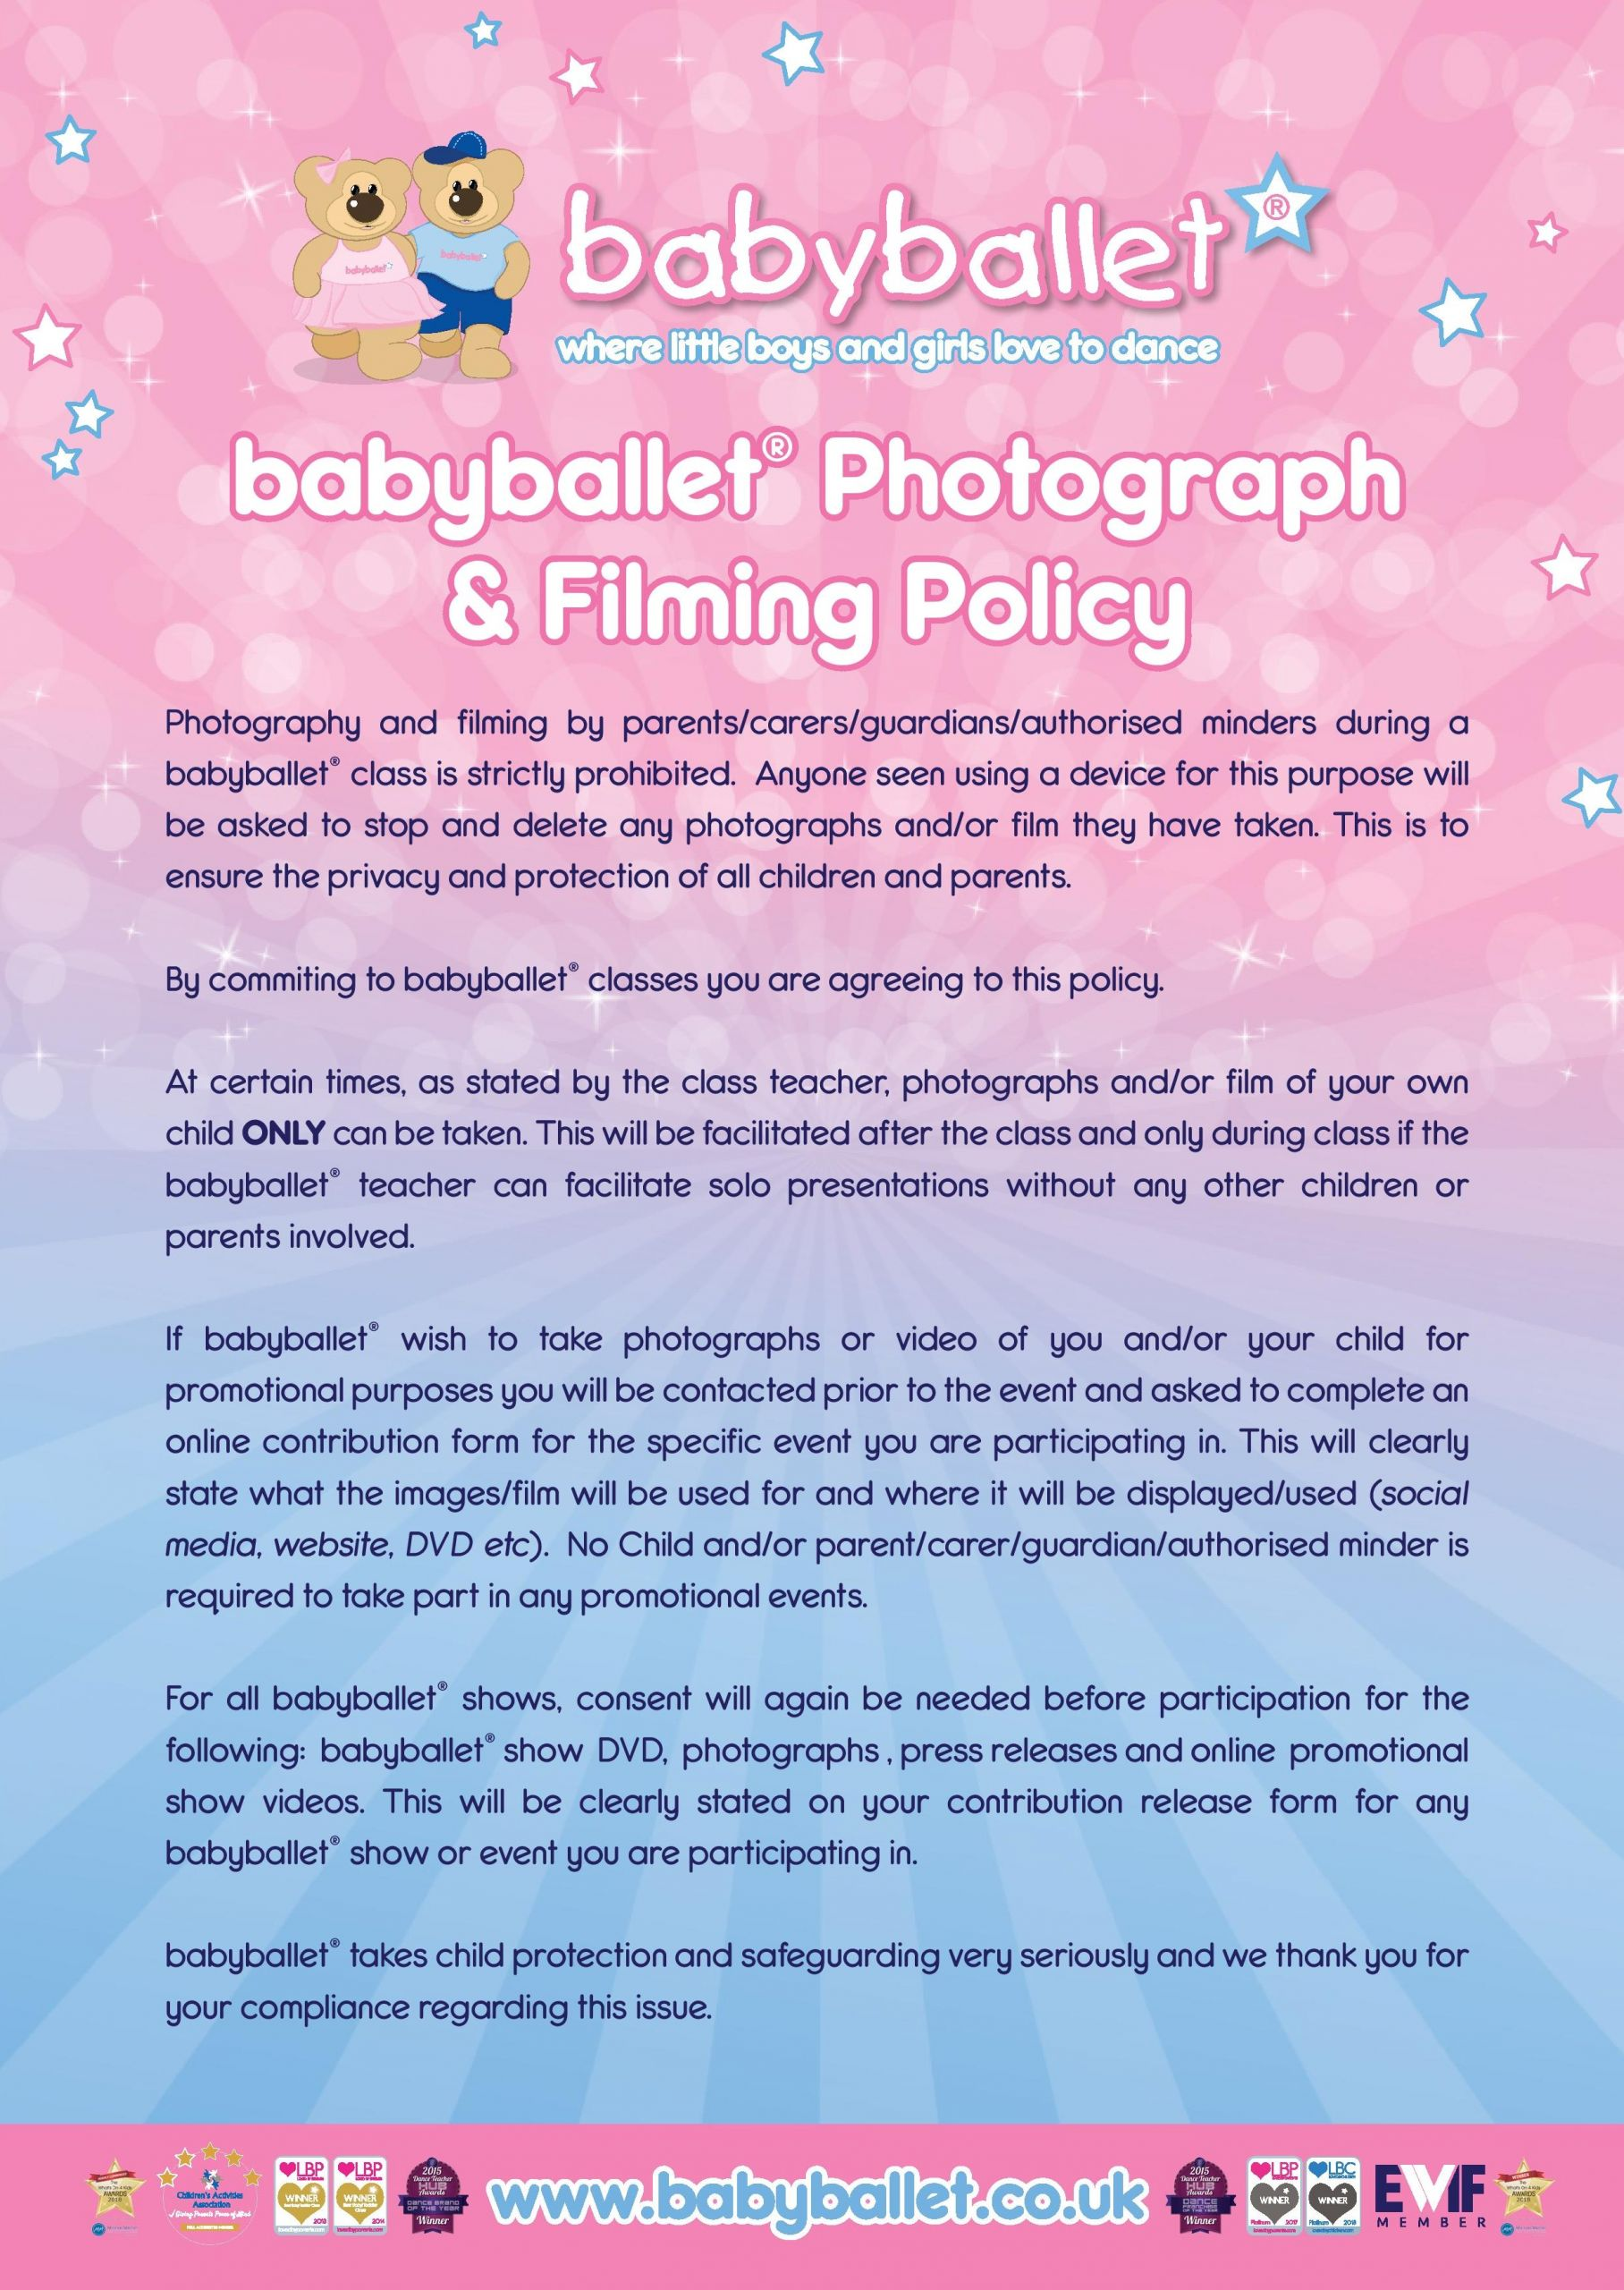 babyballet® Photograph and Filming Policy